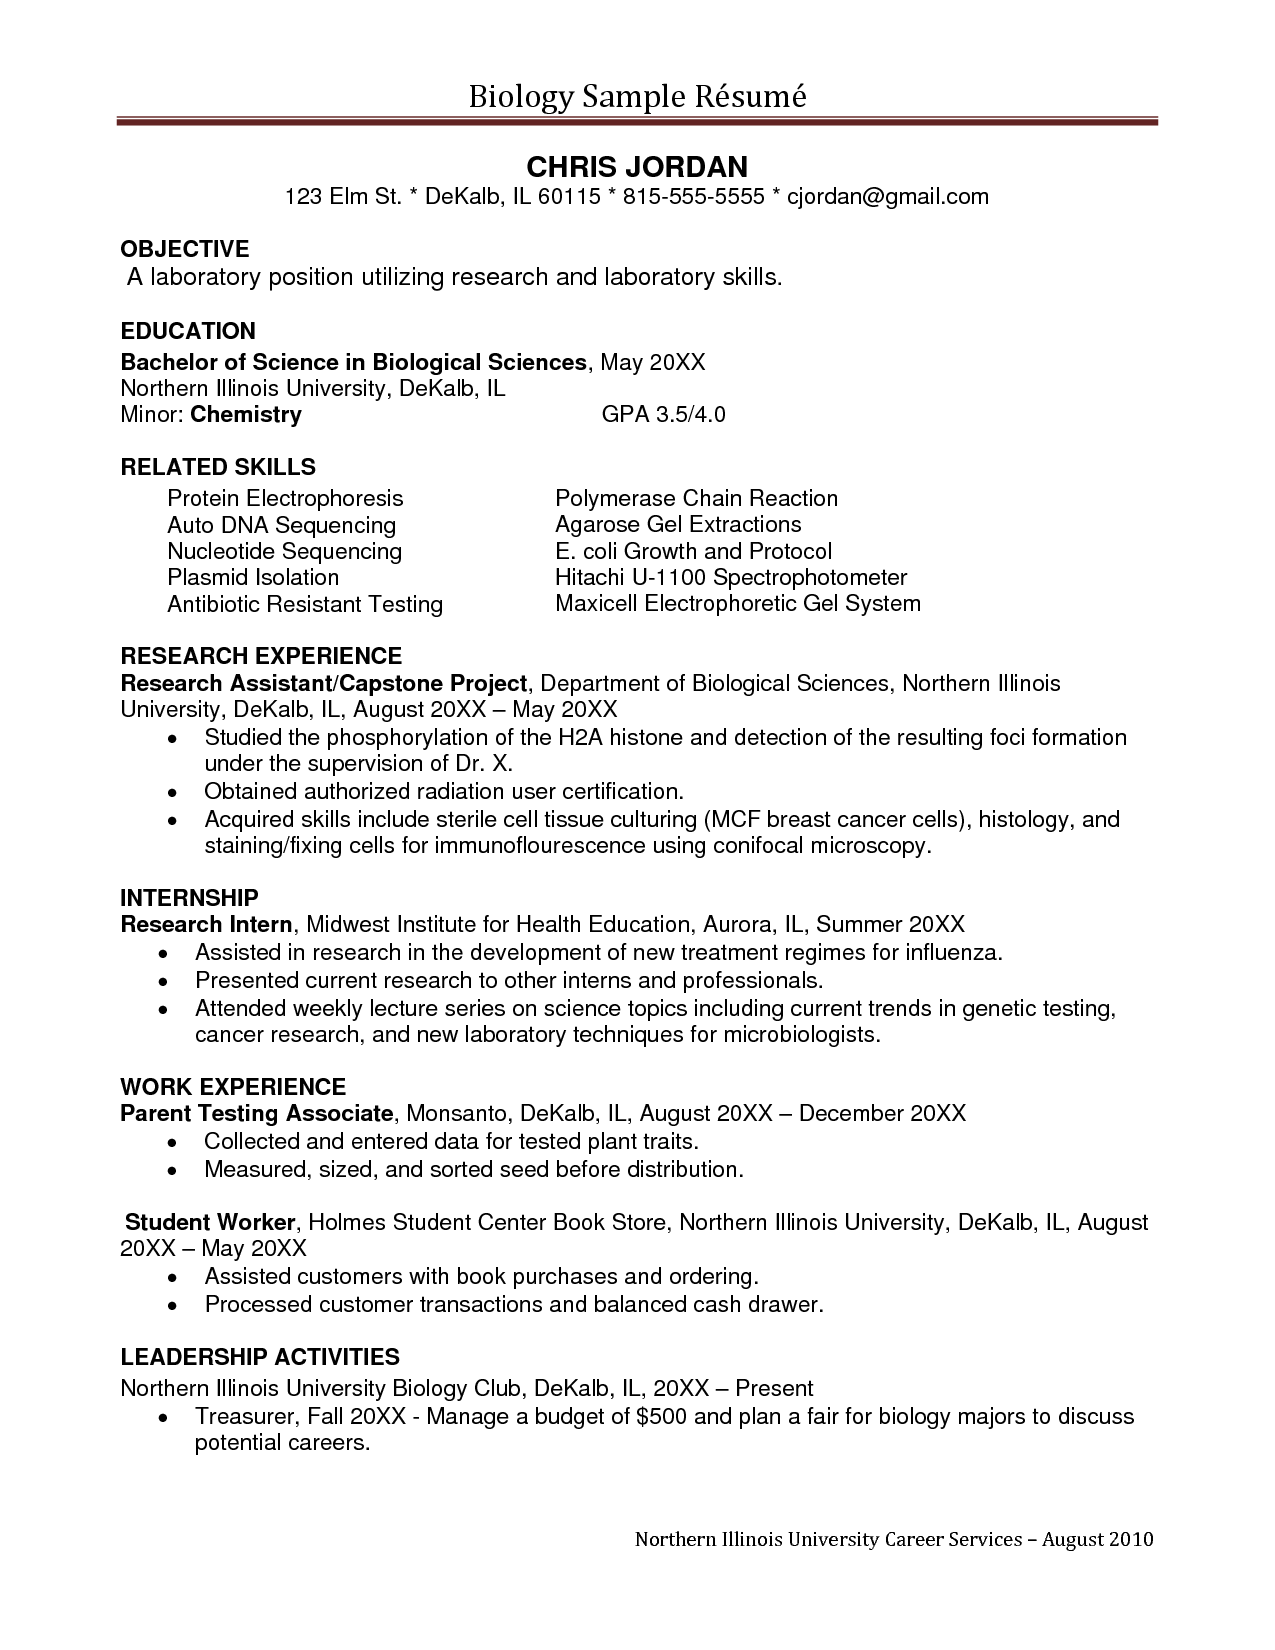 research assistant resume sample objective research assistant research assistant resume sample objective research assistant resume sample objective admin assistant objective resume sample